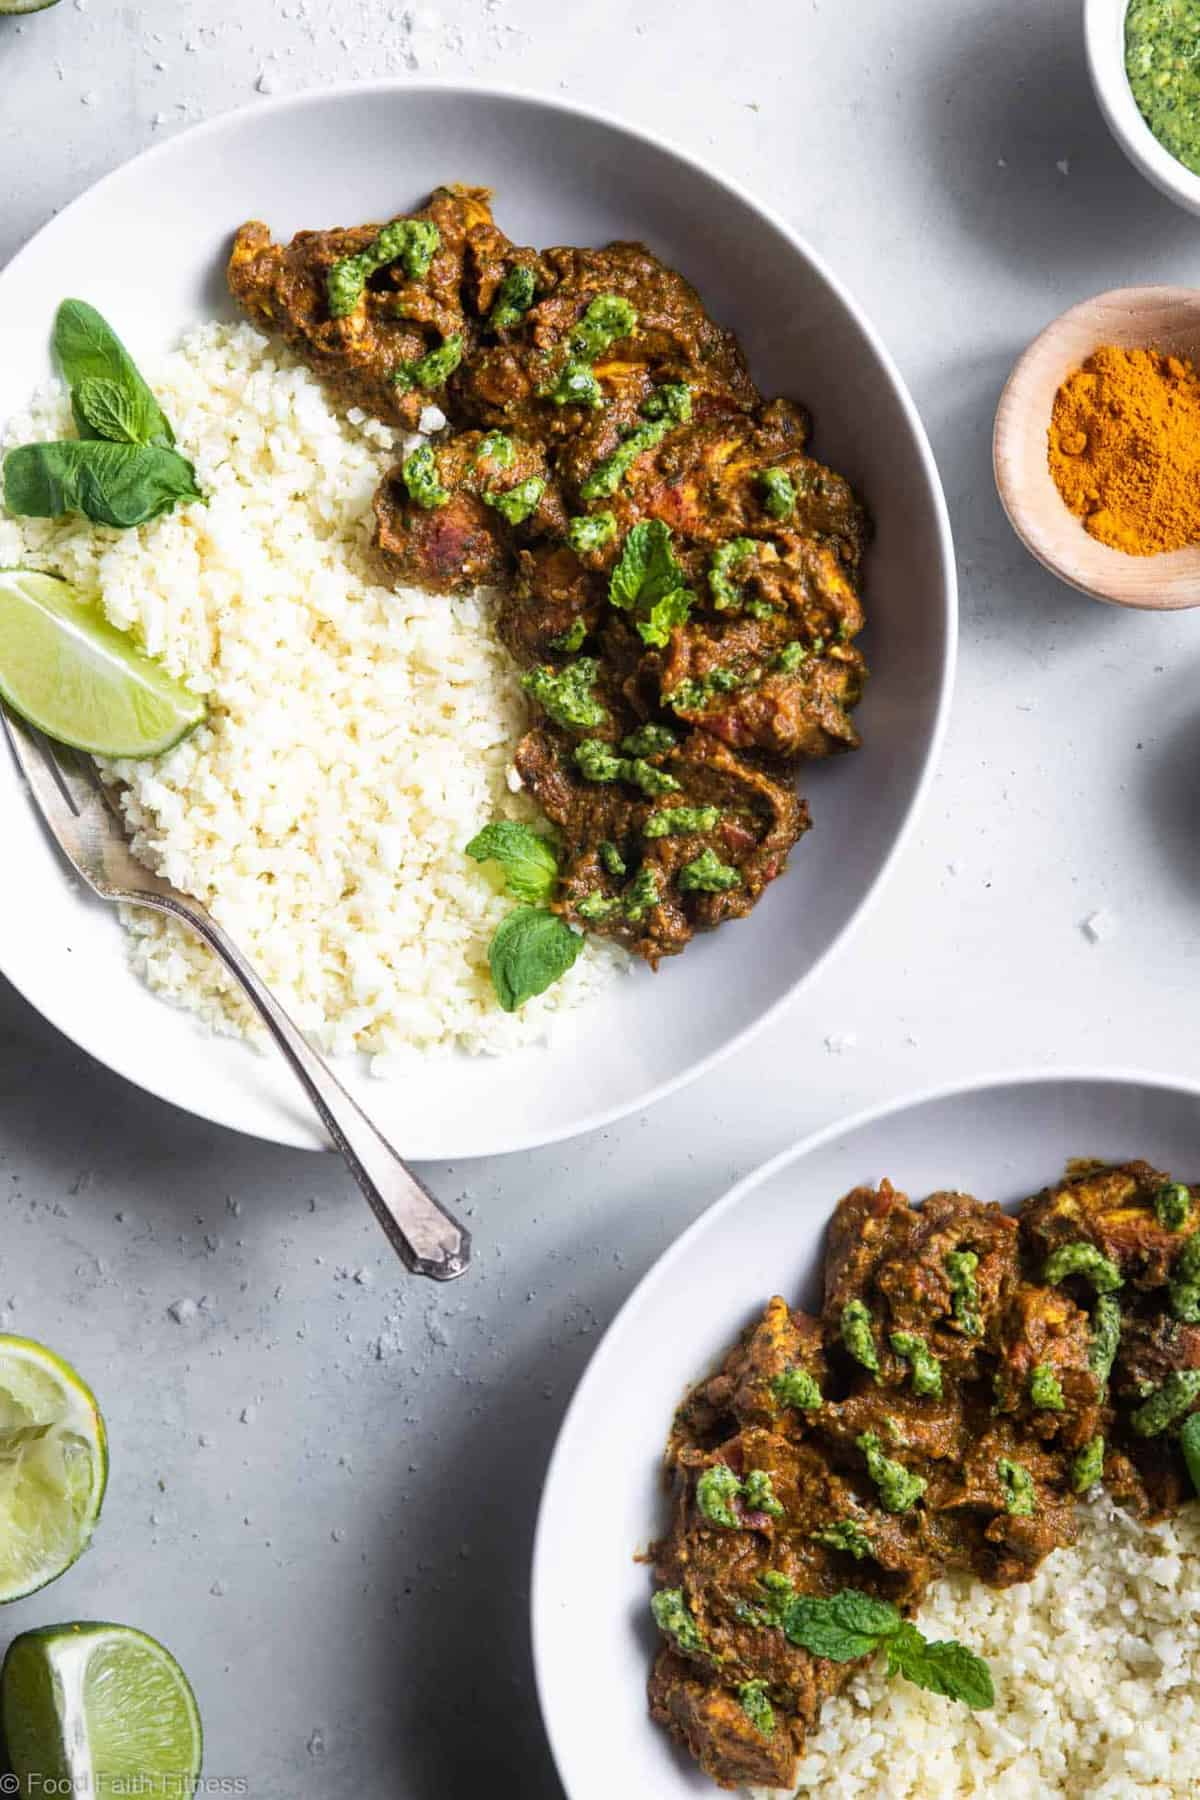 Indian Spiced Chicken with Cashew Cilantro Pesto - This chicken curry with a creamy pesto made of cashews is an easy, weeknight dinner with big bold flavor! Gluten free, paleo, whole30 and low carb too! | #Foodfaithfitness | #glutenfree #paleo #lowcarb #keto #whole30